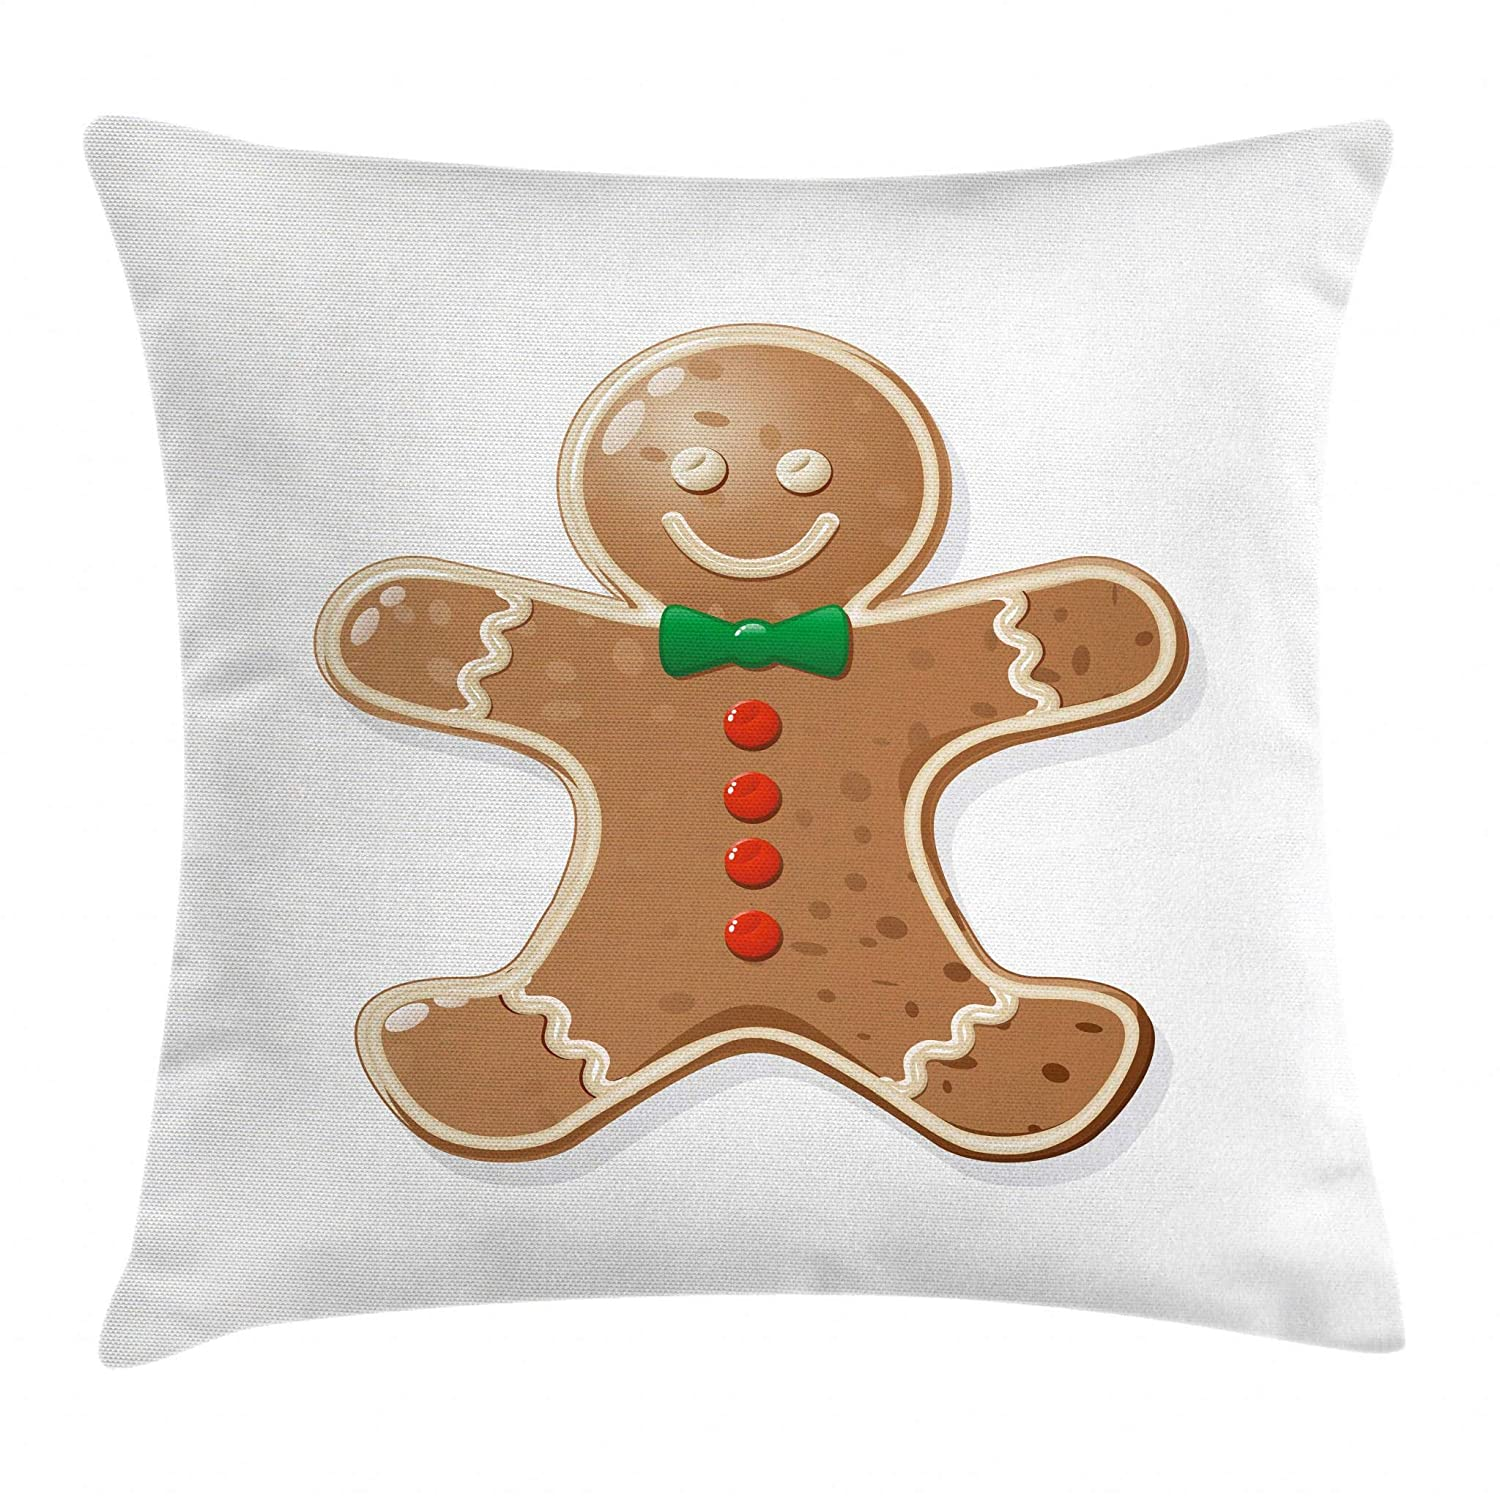 Ambesonne Gingerbread Man Throw Pillow Cushion Cover, Iconic Seasonal Baked Pastry Sugary Treats for Kids Joyous Fun Xmas, Decorative Square Accent Pillow Case, 16 X 16 Inches, Caramel Red Green min_38350_16X16